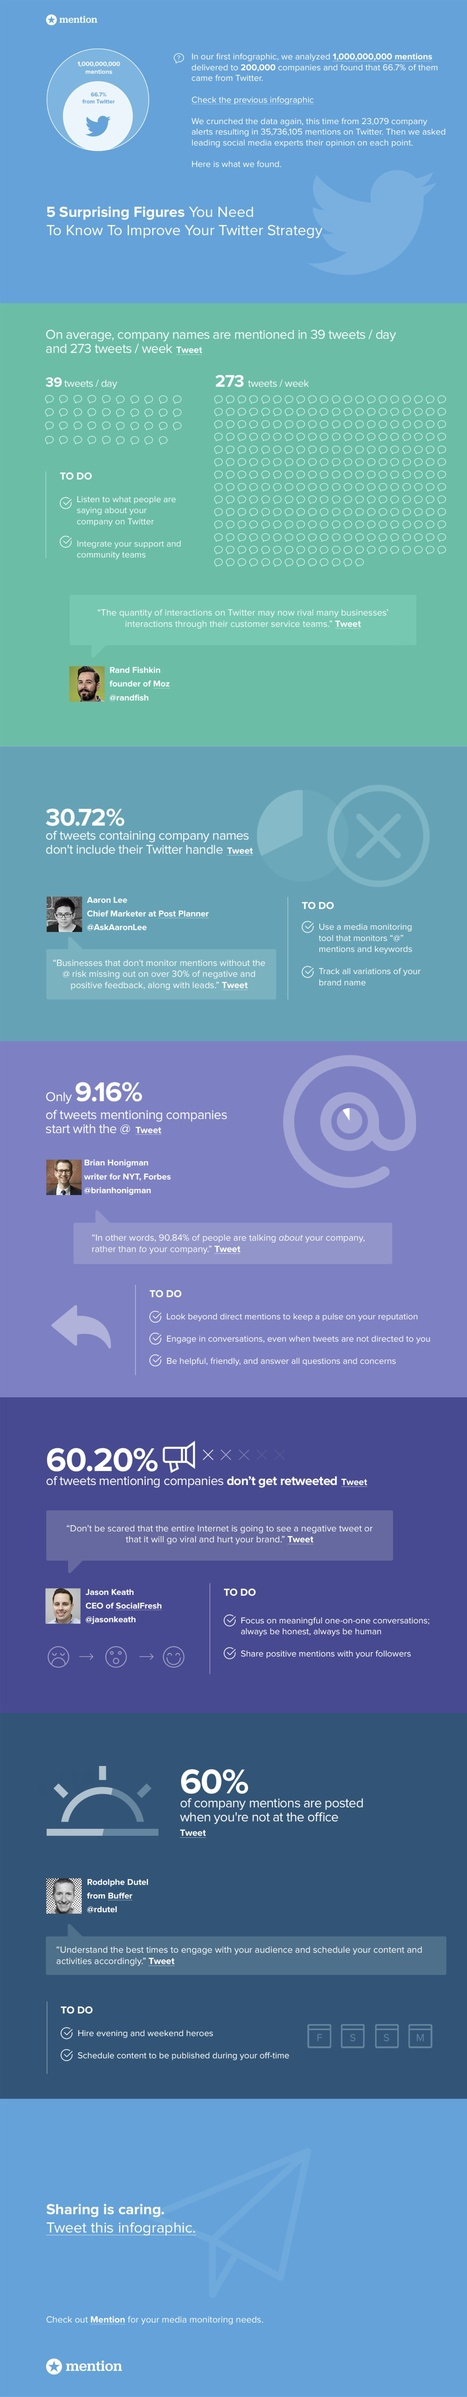 5 Tips You Need to Know to Improve Your Twitter Strategy #infographic | digital marketing strategy | Scoop.it